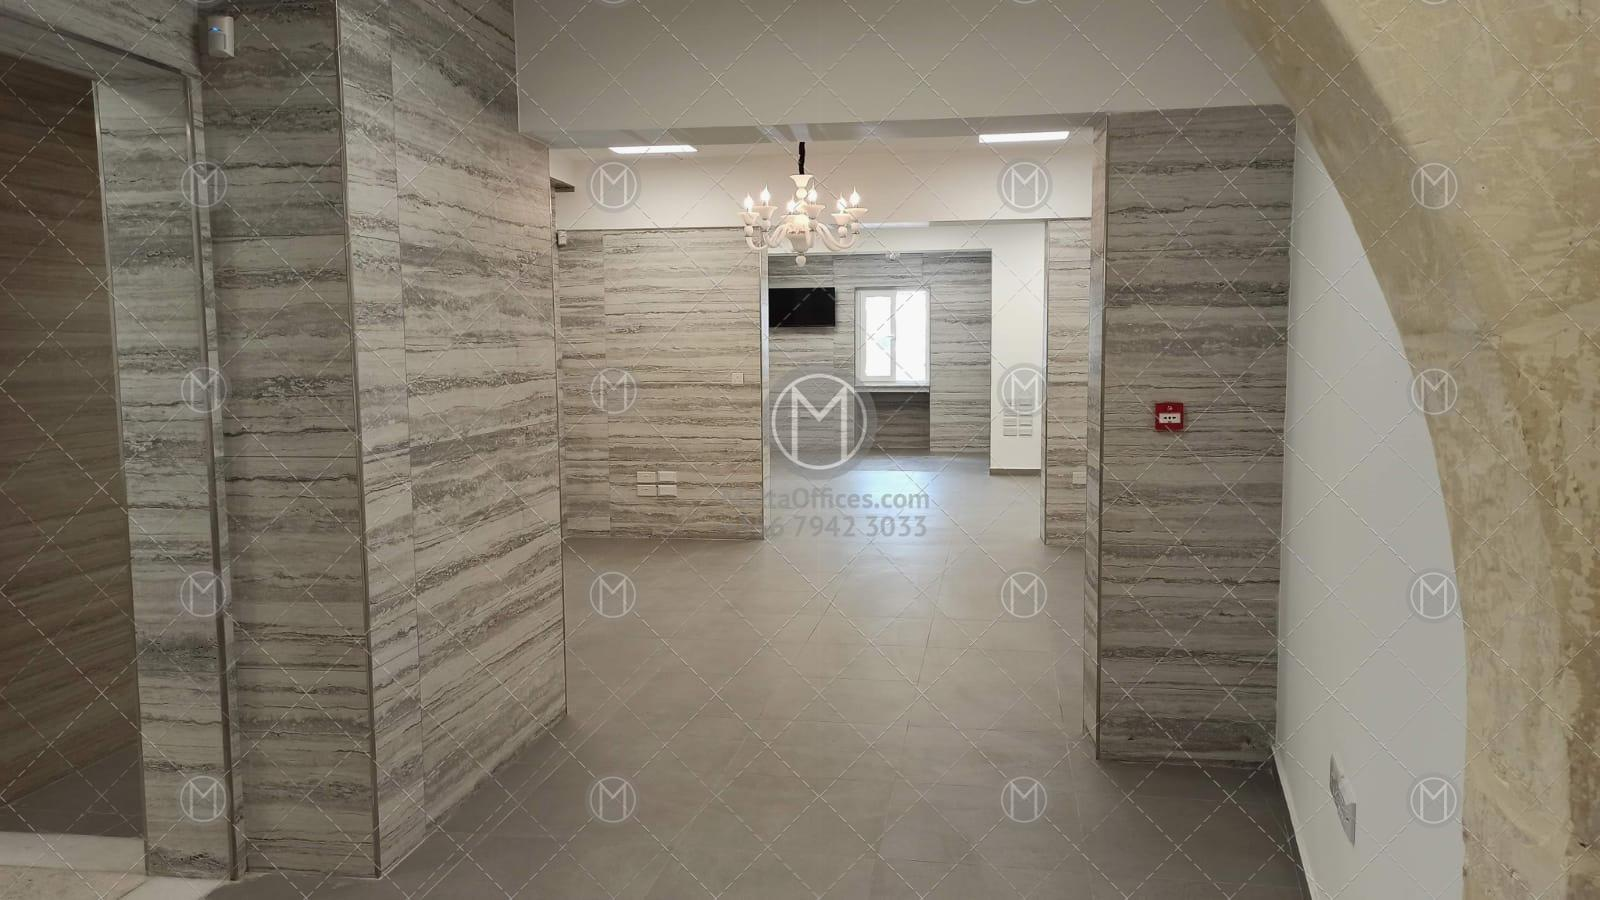 Traditional Floriana Office for Rent - (5)